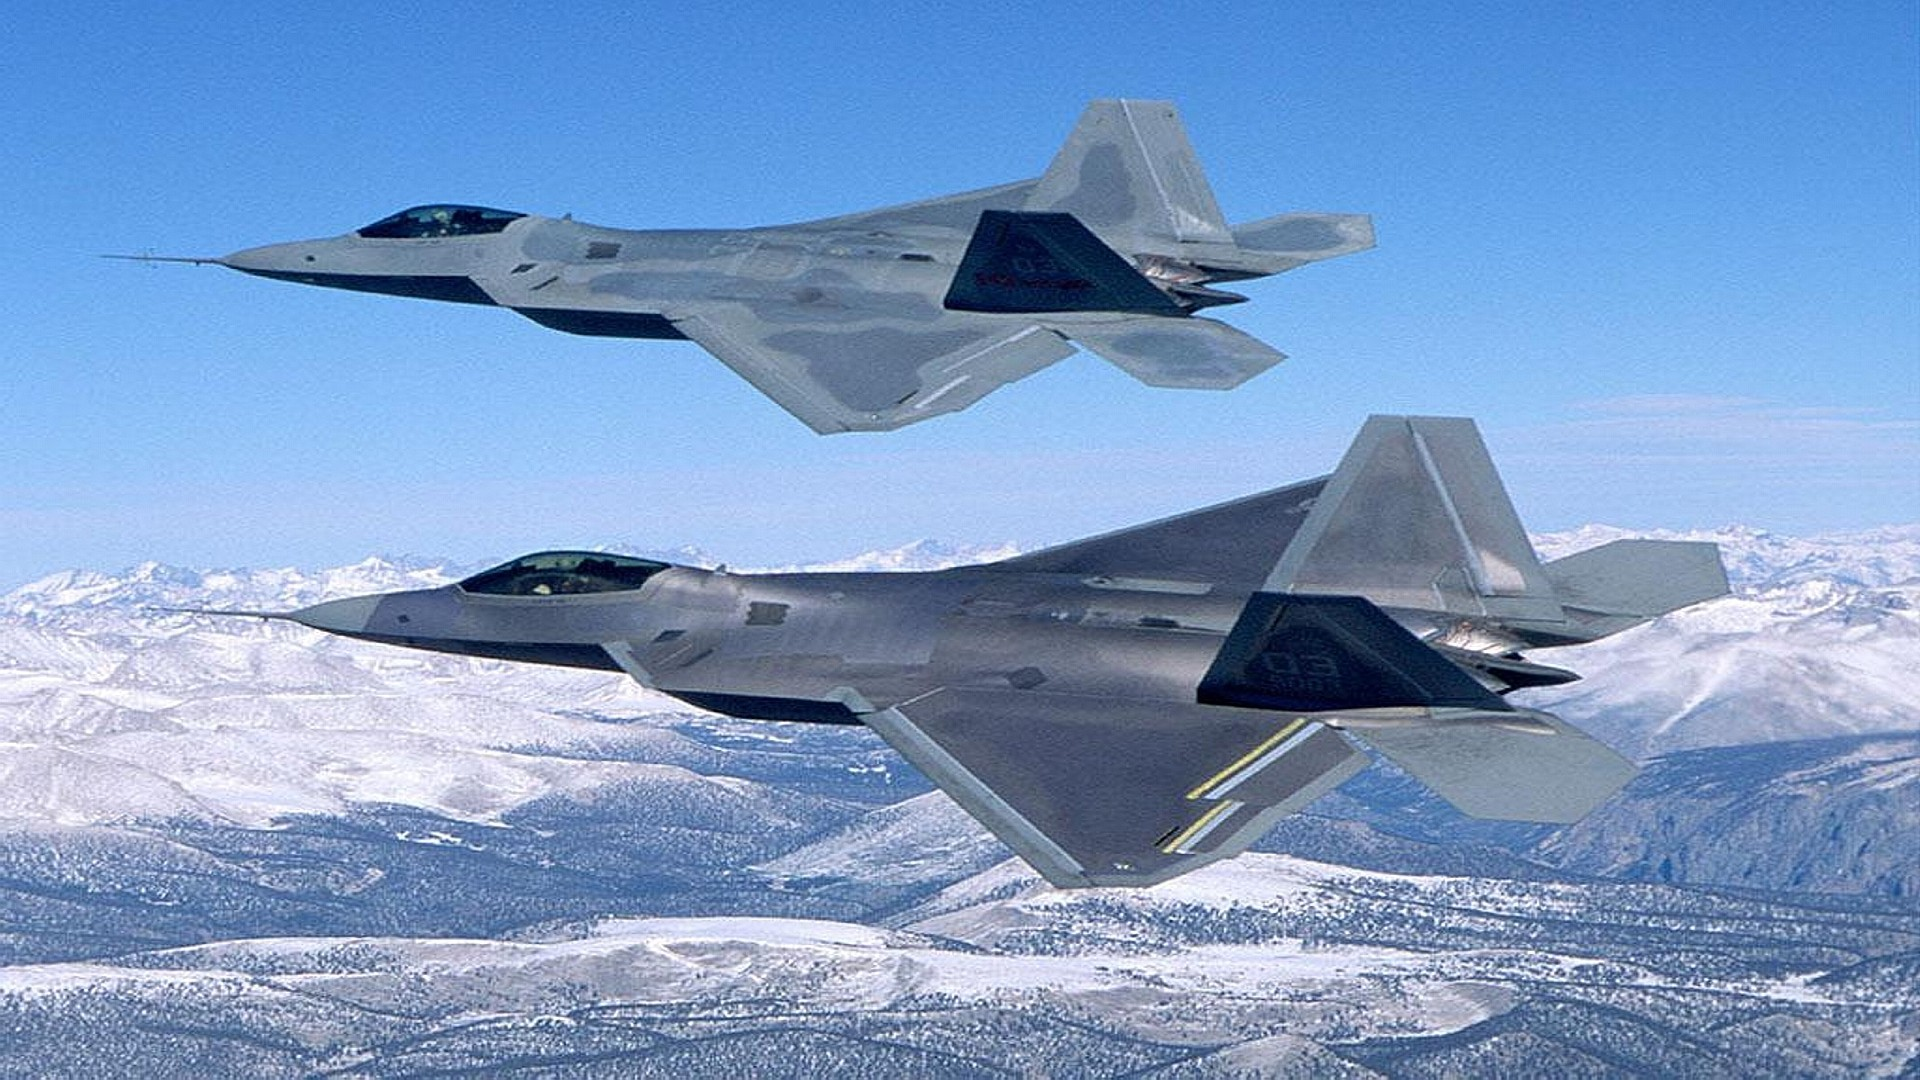 Lockheed Martin F 22 Raptor wallpaper 12147 1920x1080